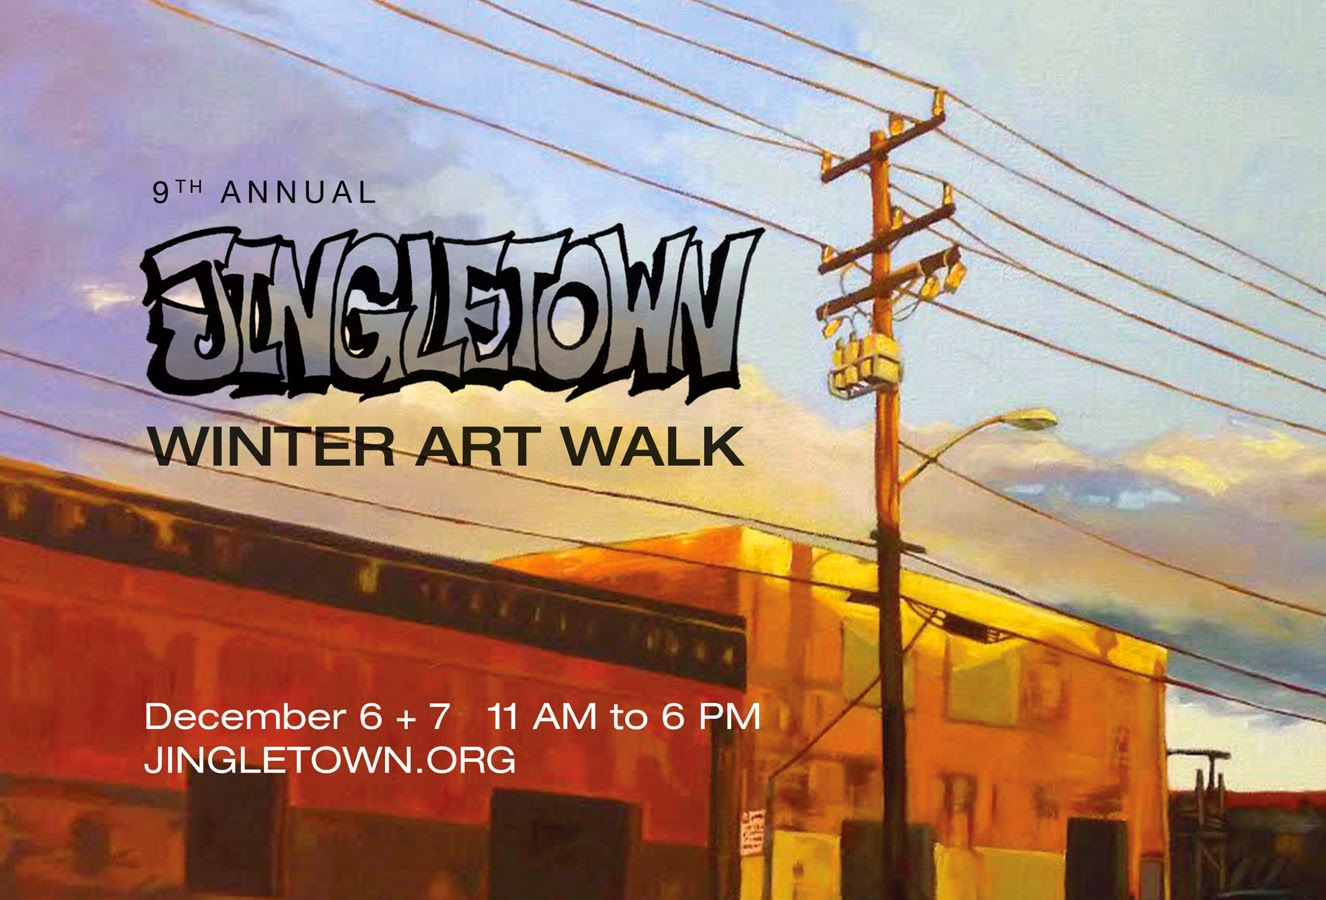 http://styrous.blogspot.com/2014/11/9th-annual-jingletown-winter-art-walk.html